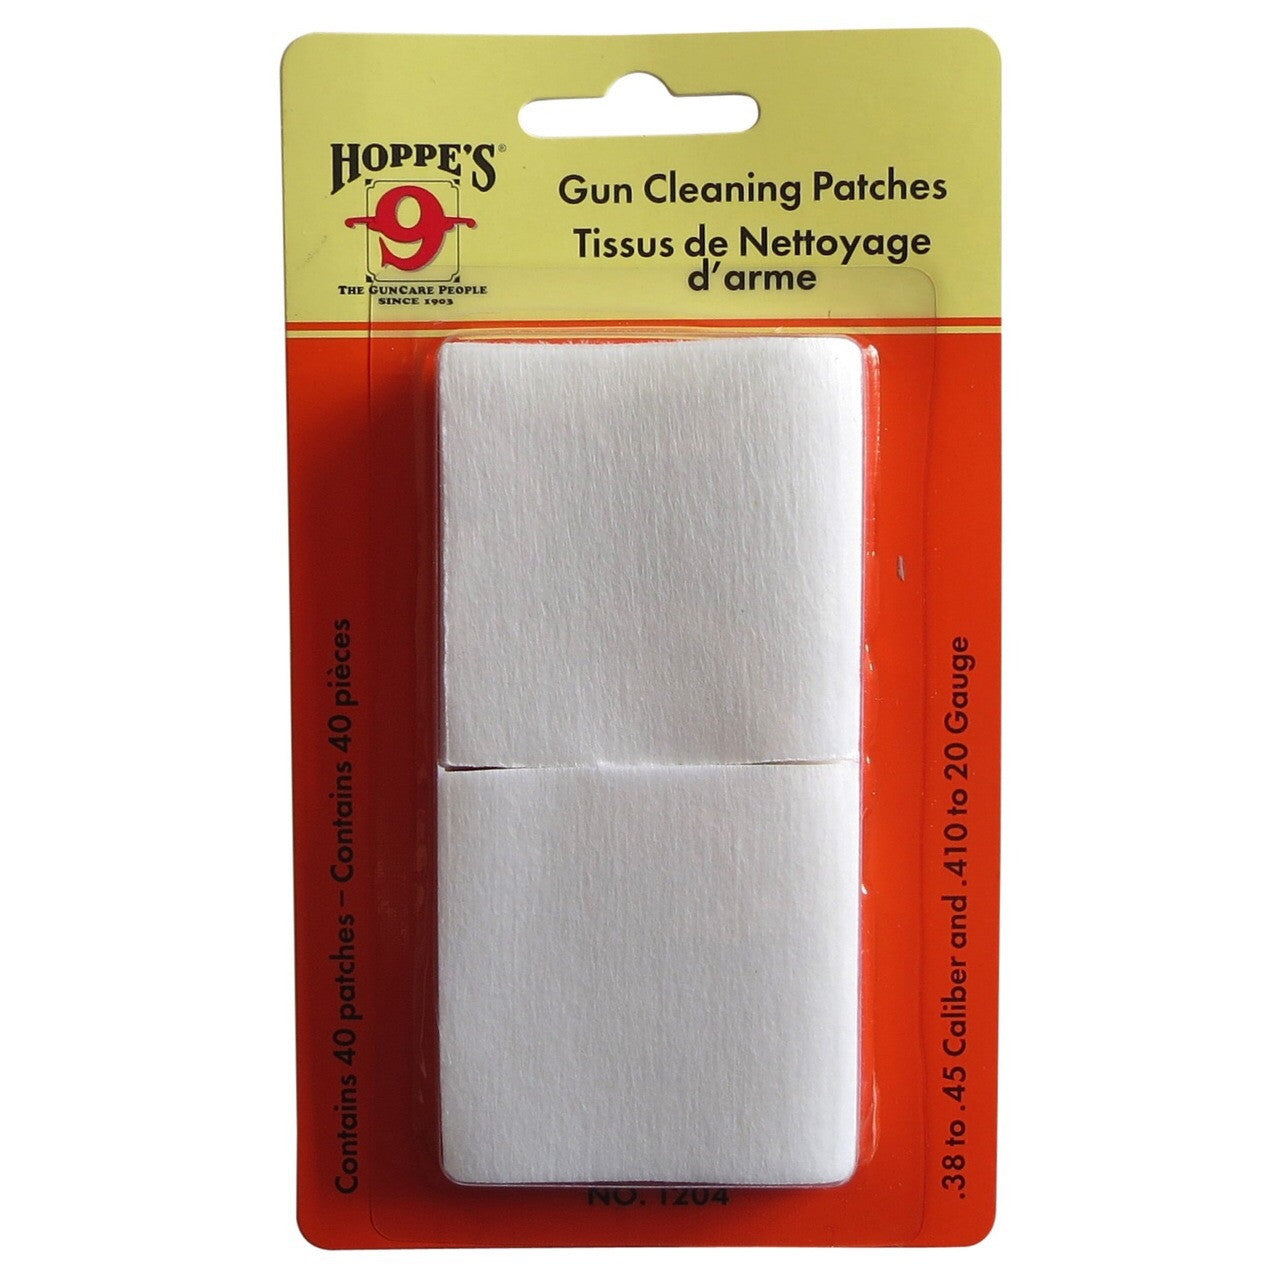 Hoppes CLEANING PATCHES .38-.45CAL AND .410 - 20 GUAGE-High Falls Outfitters